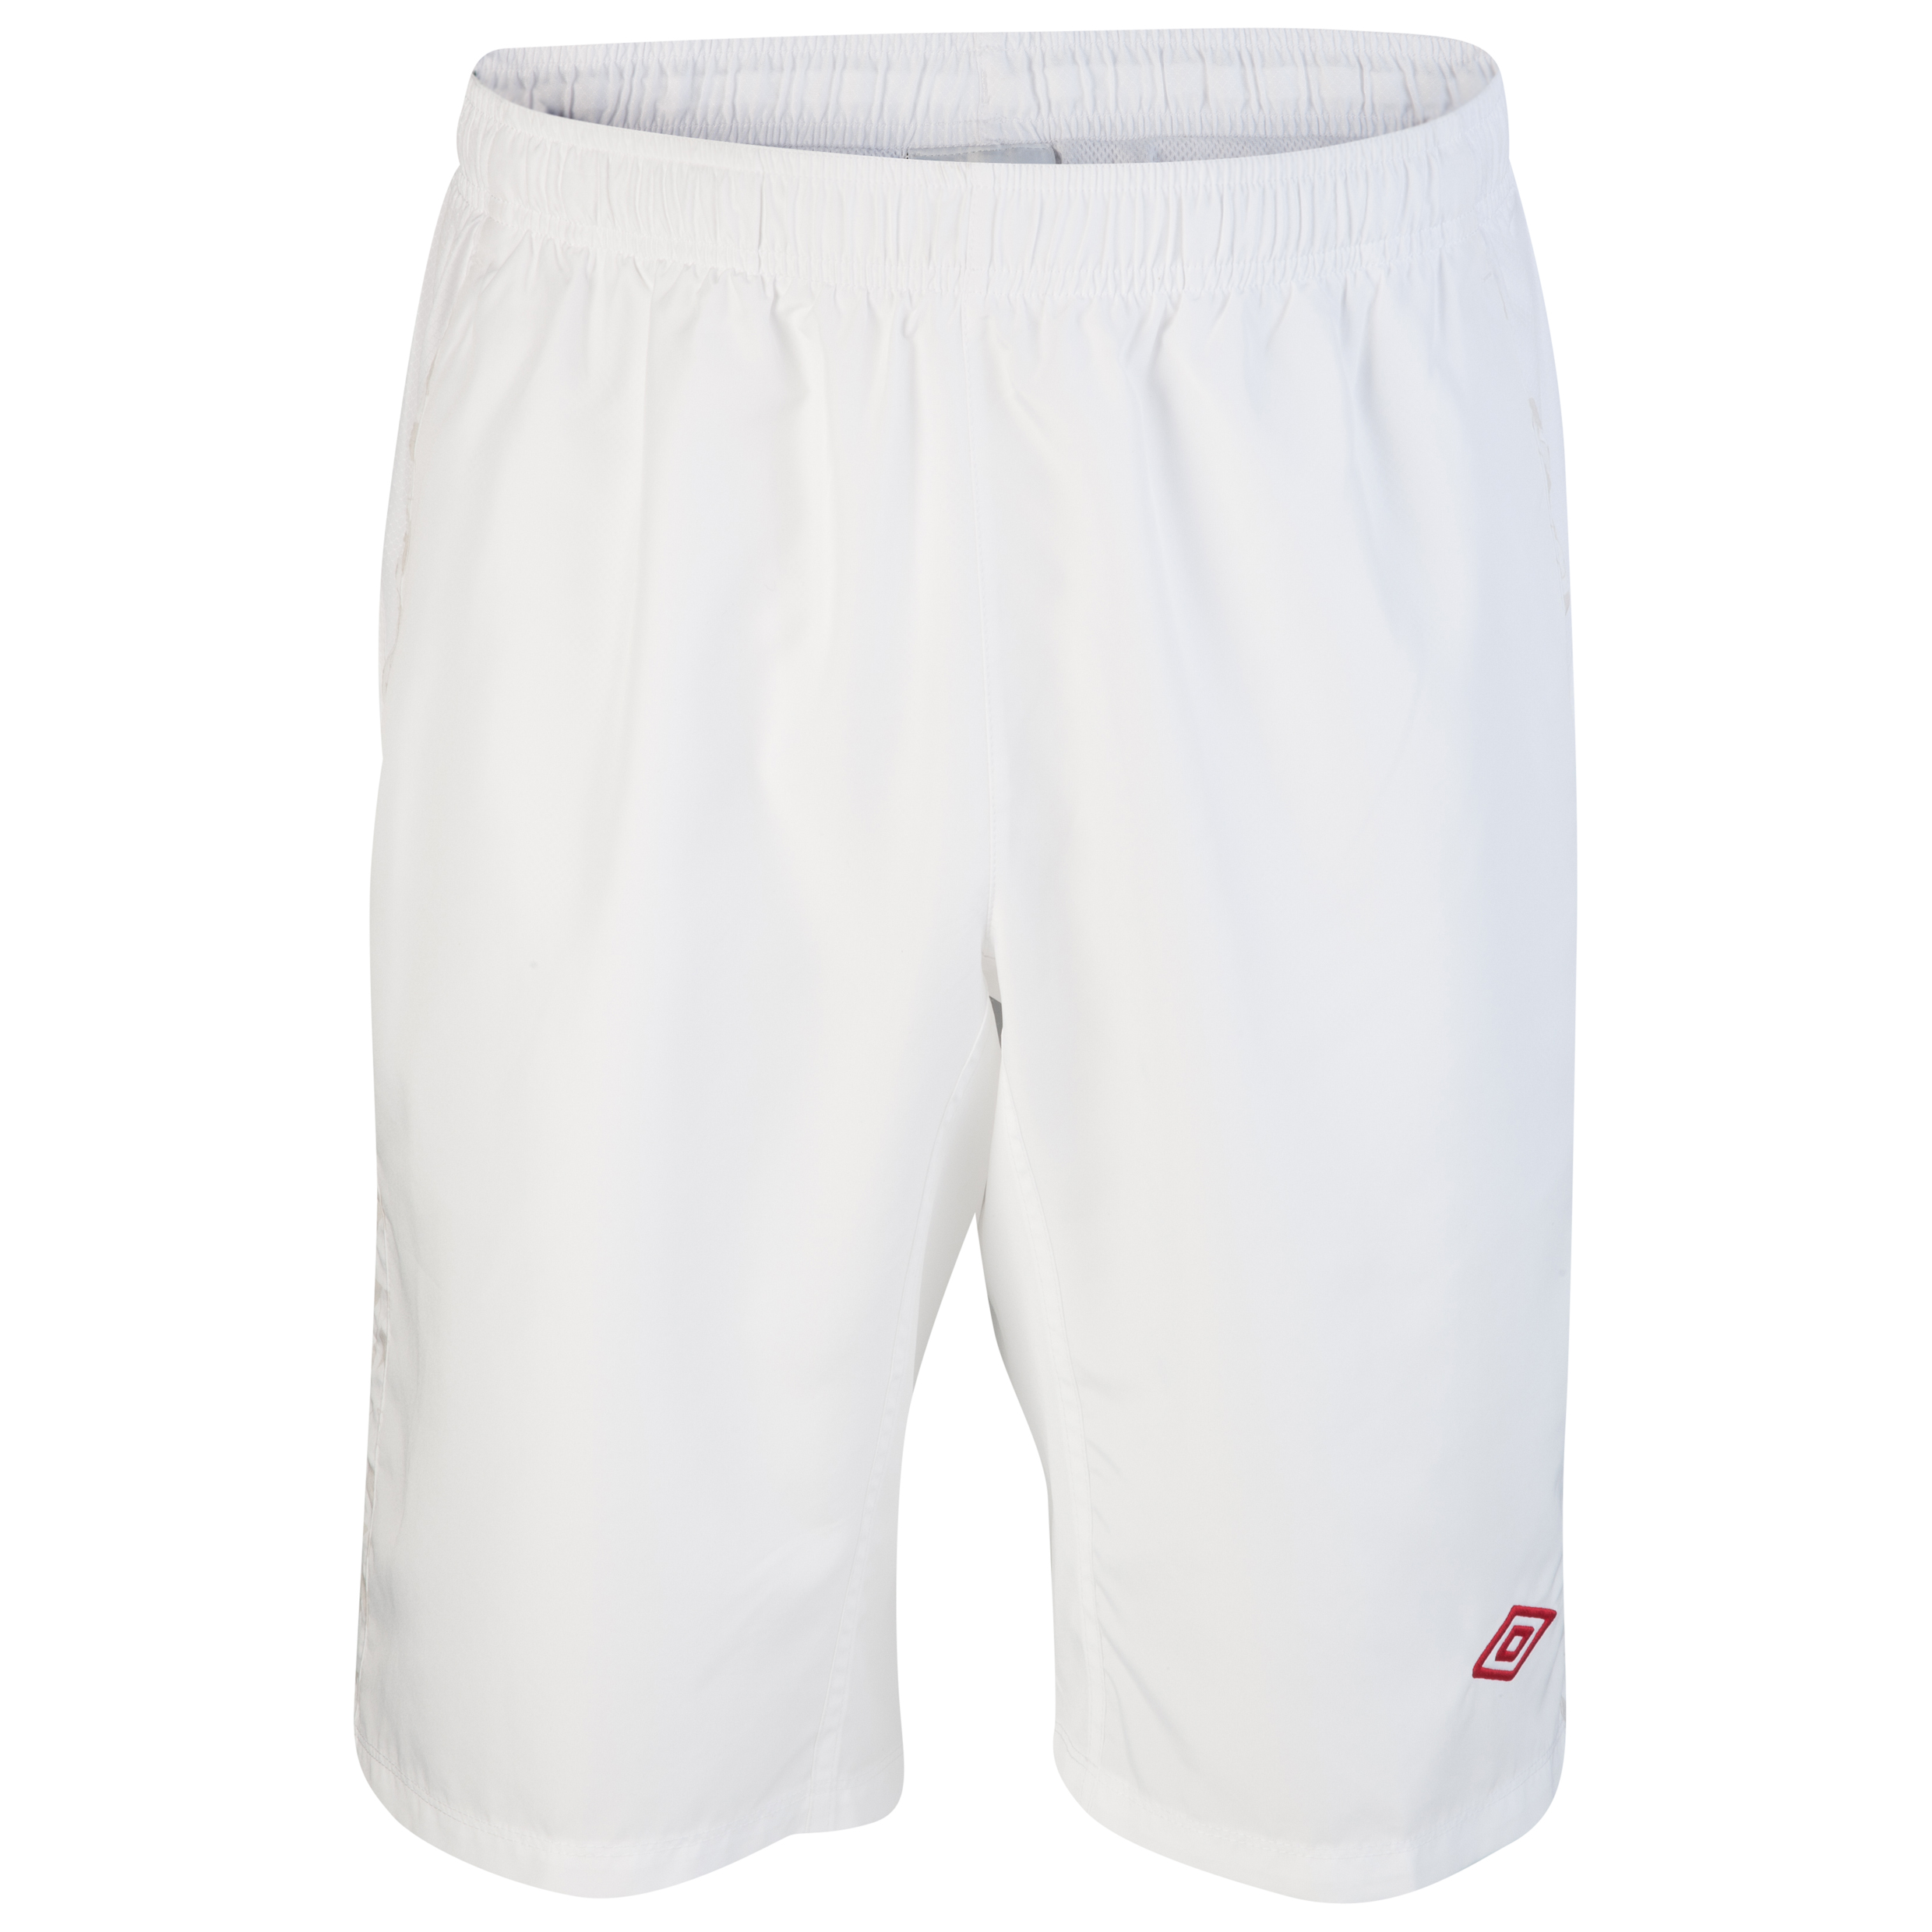 Umbro Geometra Long Woven Short - White